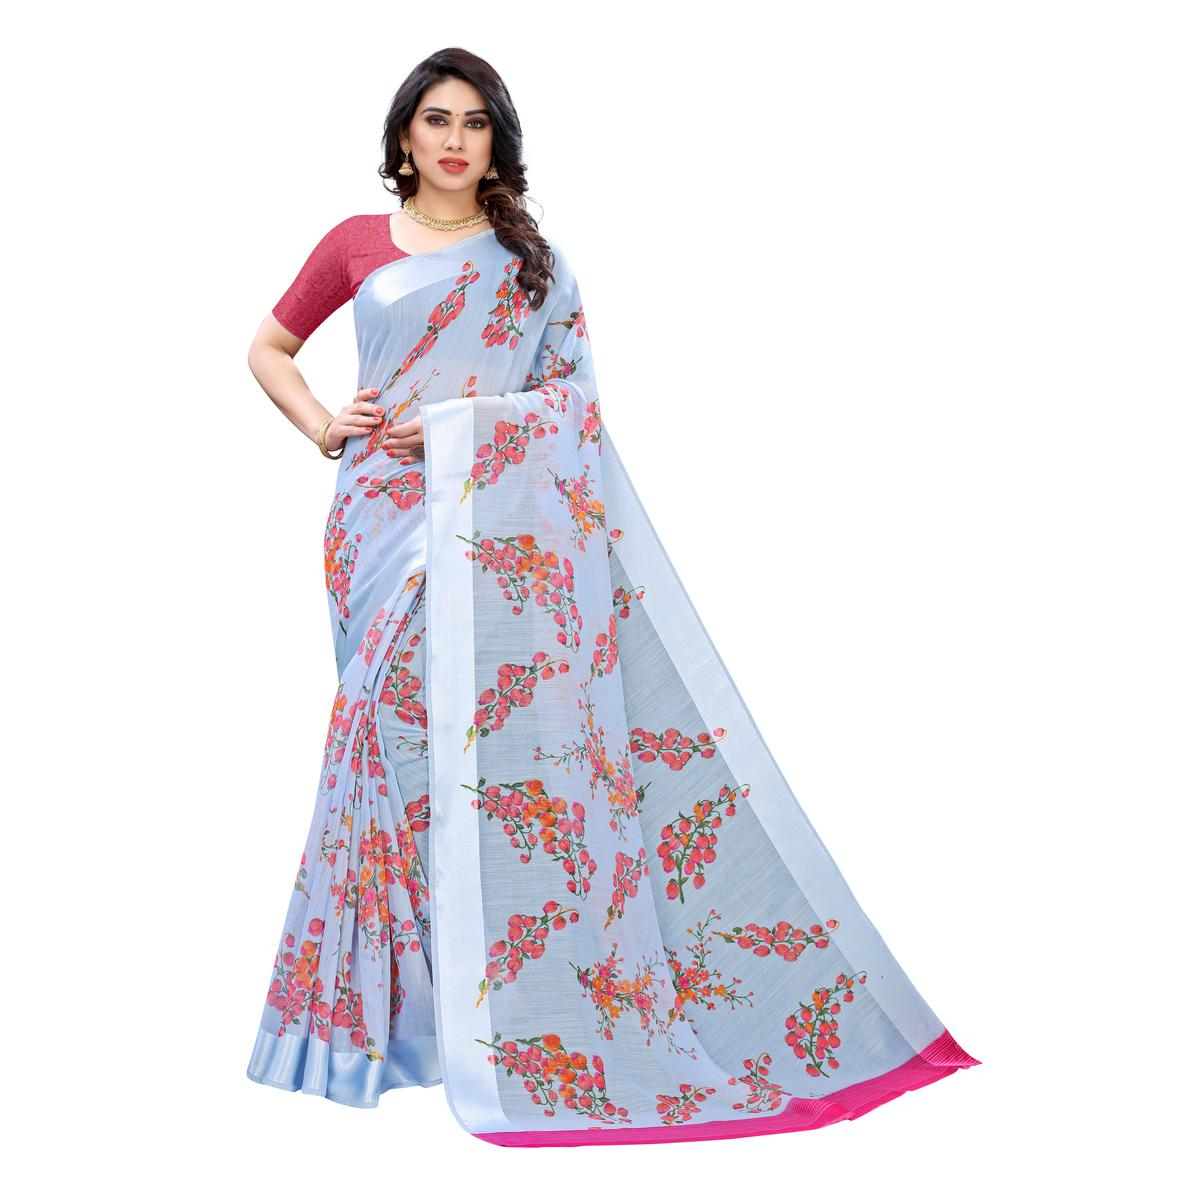 Blooming Light Blue Colored Casual Wear Floral Printed Linen Saree